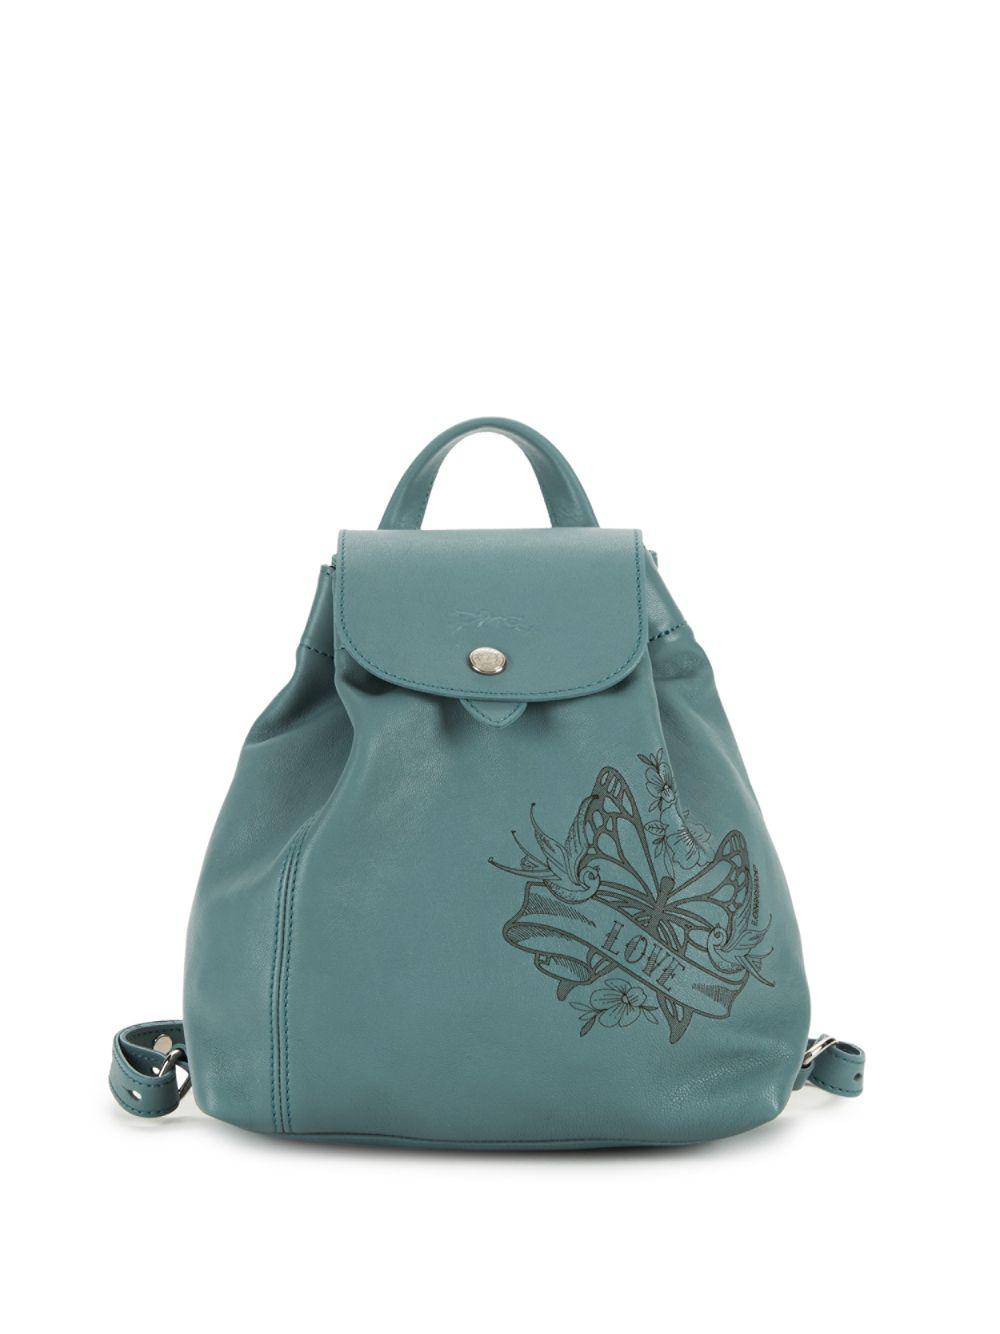 4baa8c991242 Lyst - Longchamp Tattoo Leather Backpack in Blue